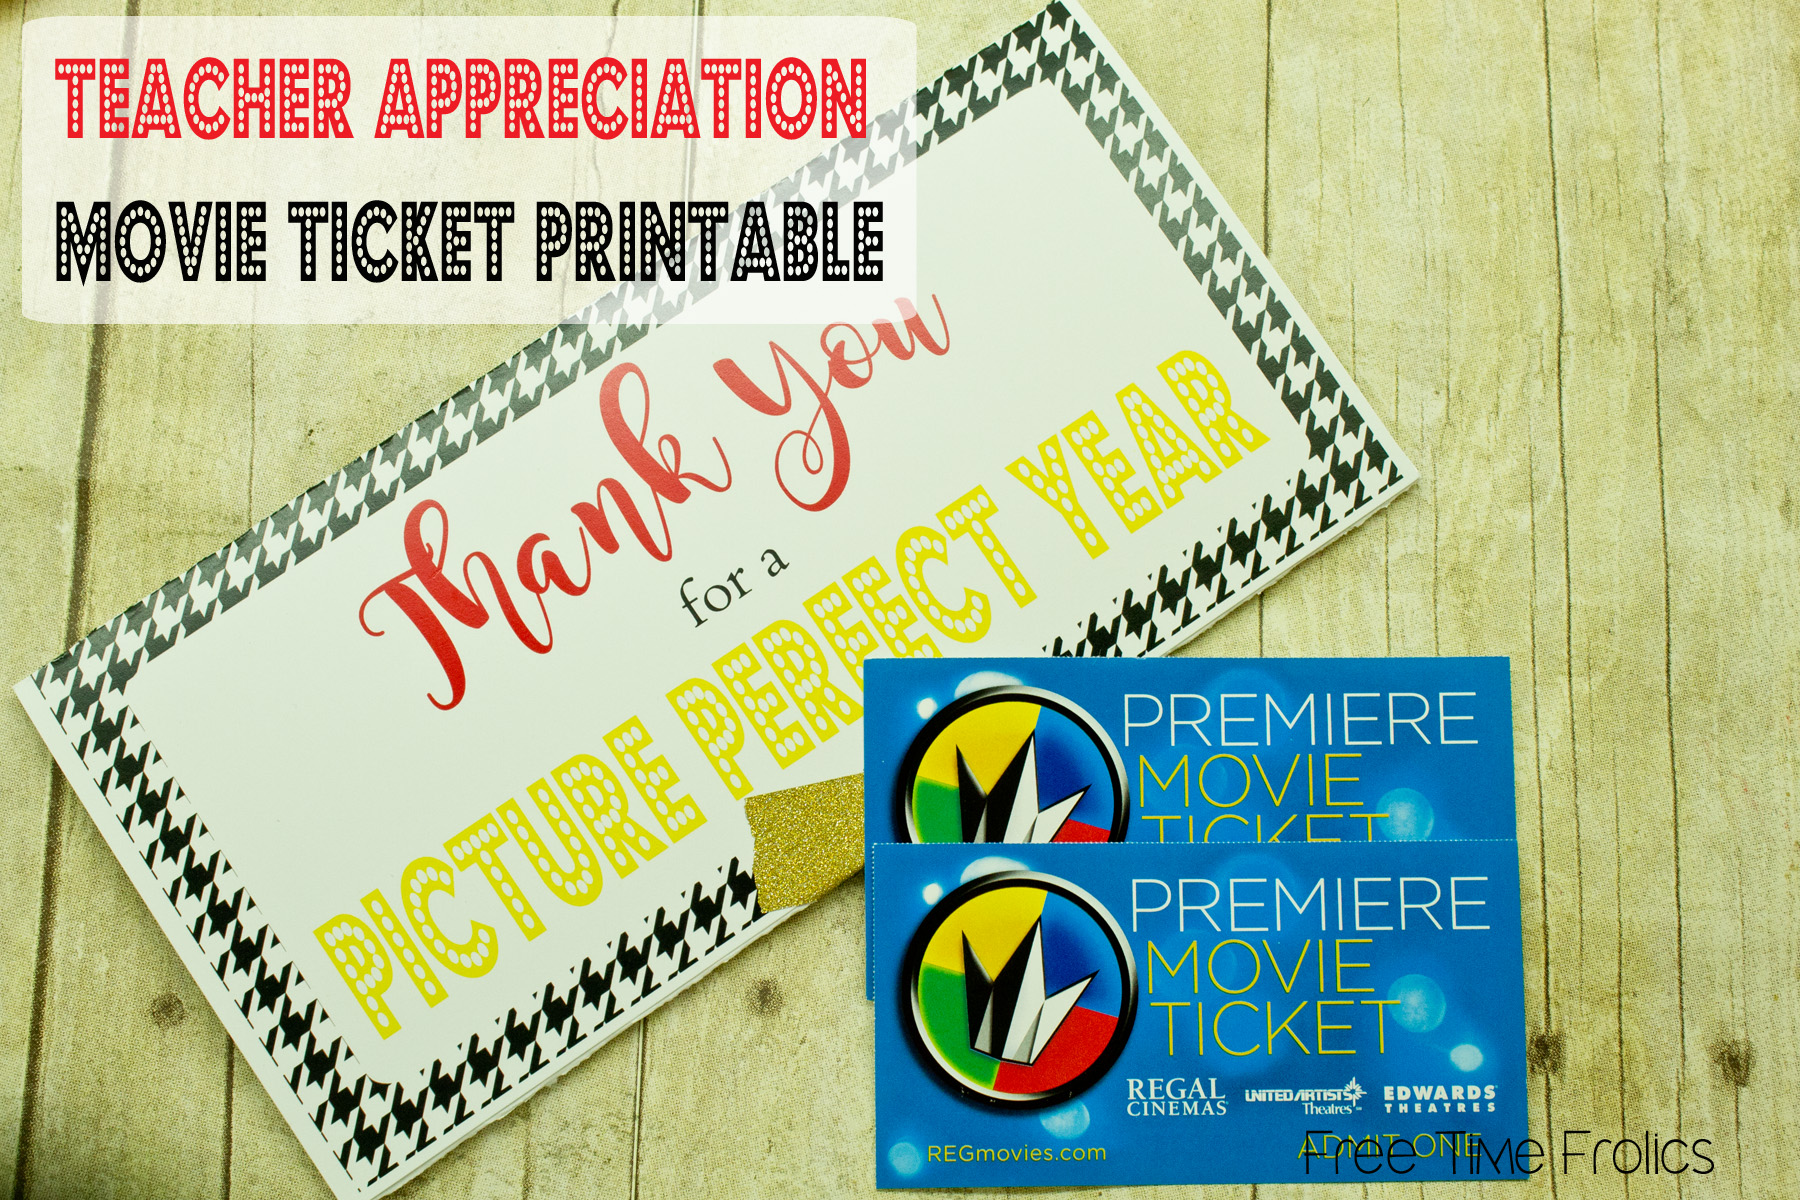 Free movie premiere ticket